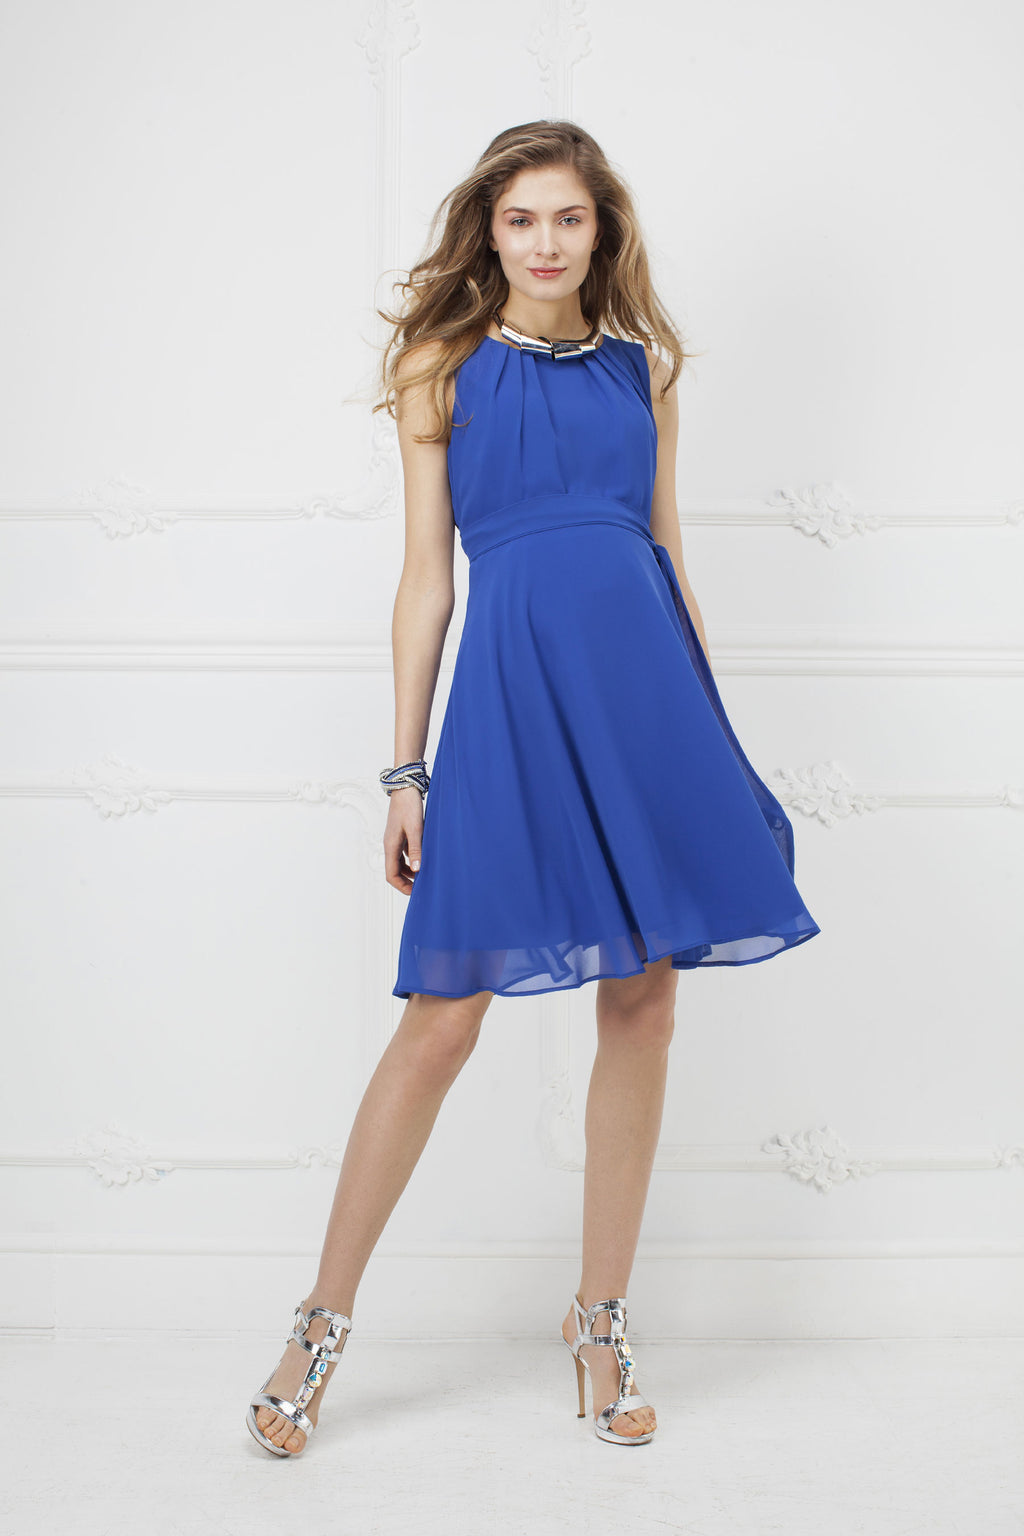 Isabella Chiffon Maternity Dress by Pietro Brunelli In Caspian Blue - Seven Women Maternity